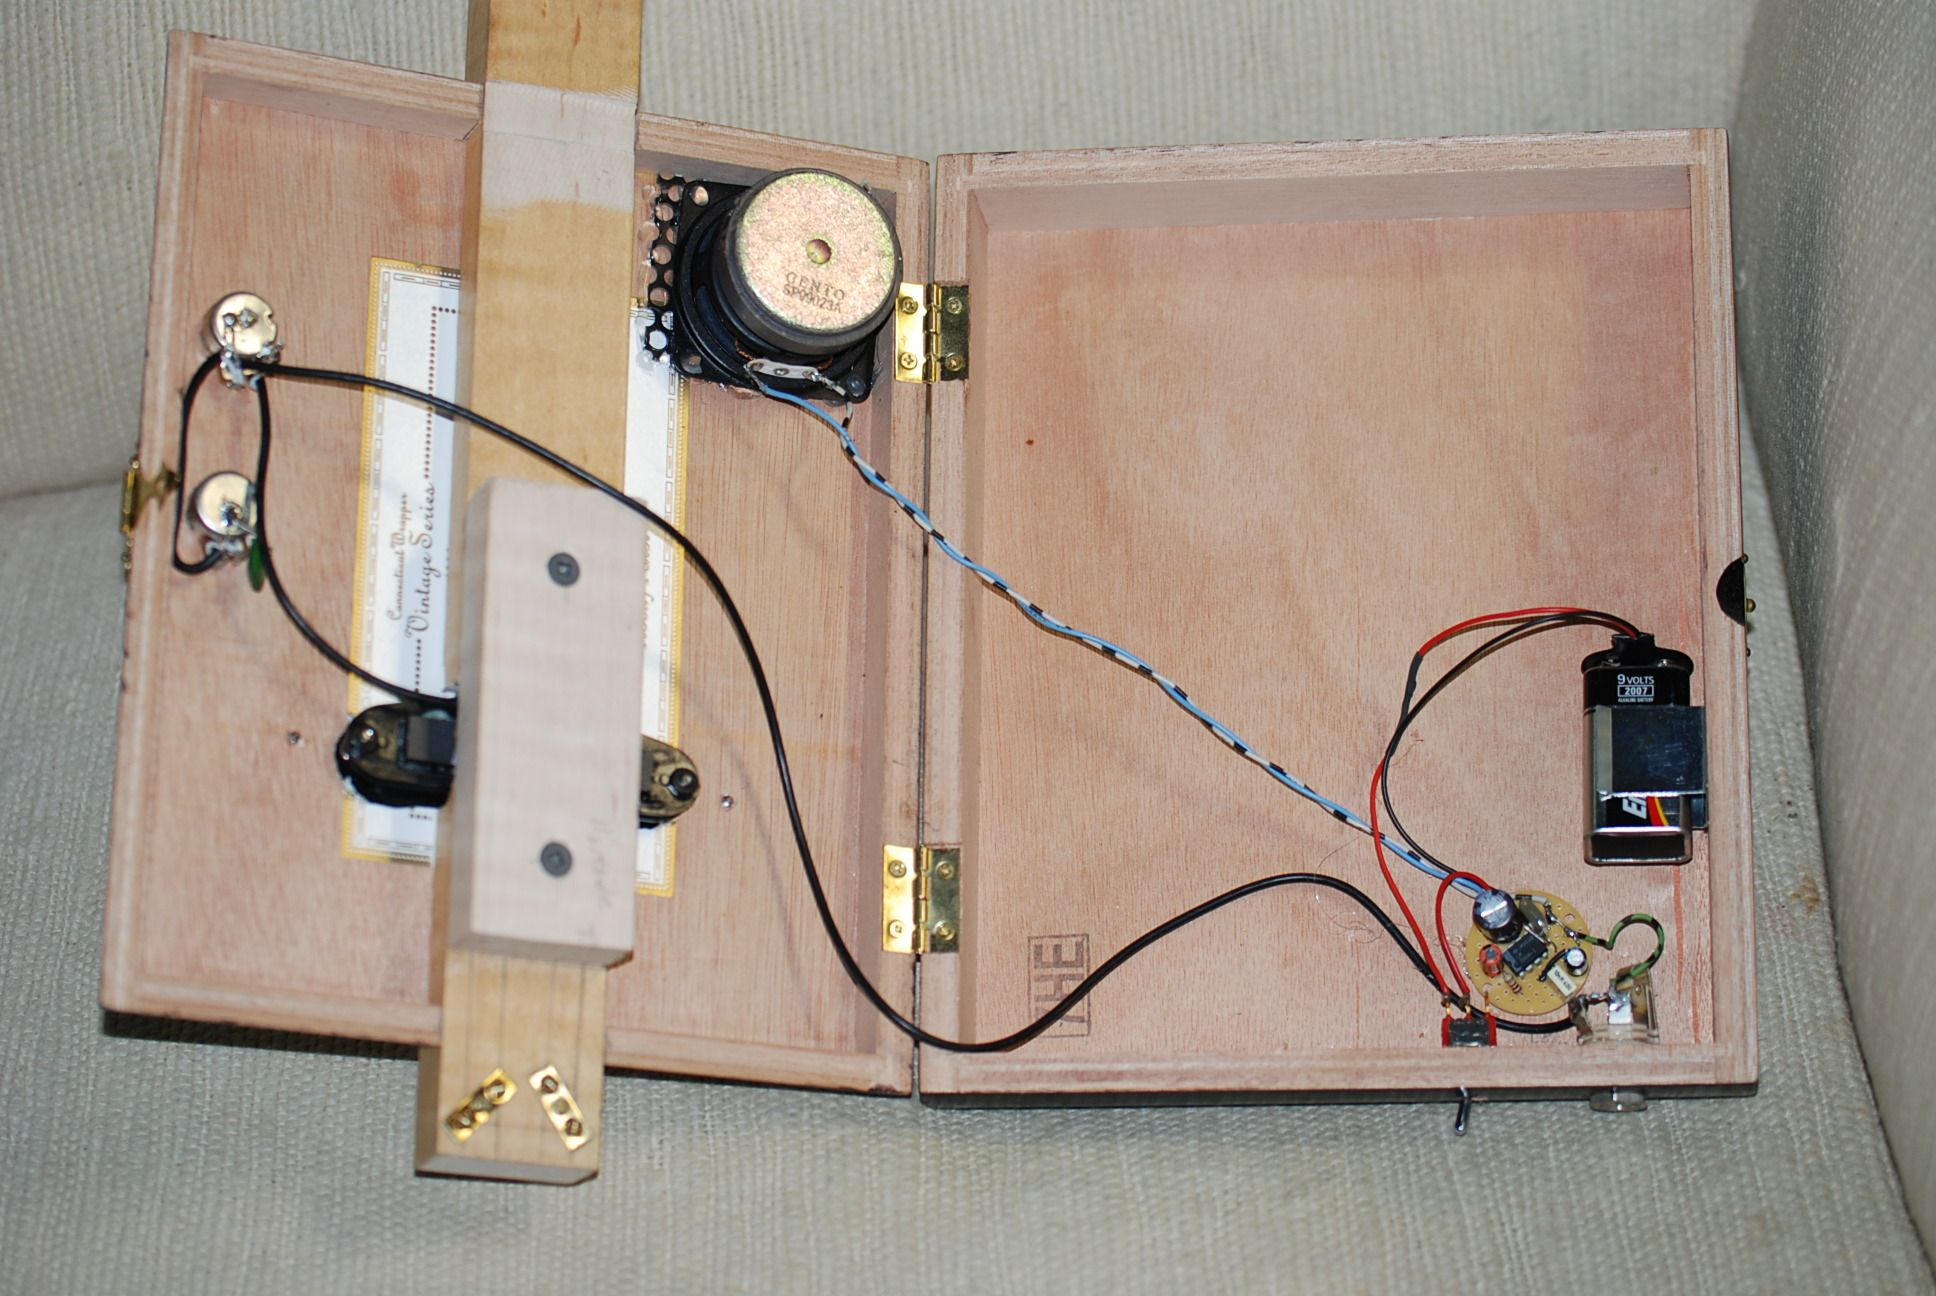 easy amp for cigar box wiring diagrams simple wiring diagram schemaeasy amp for cigar box wiring [ 1936 x 1296 Pixel ]